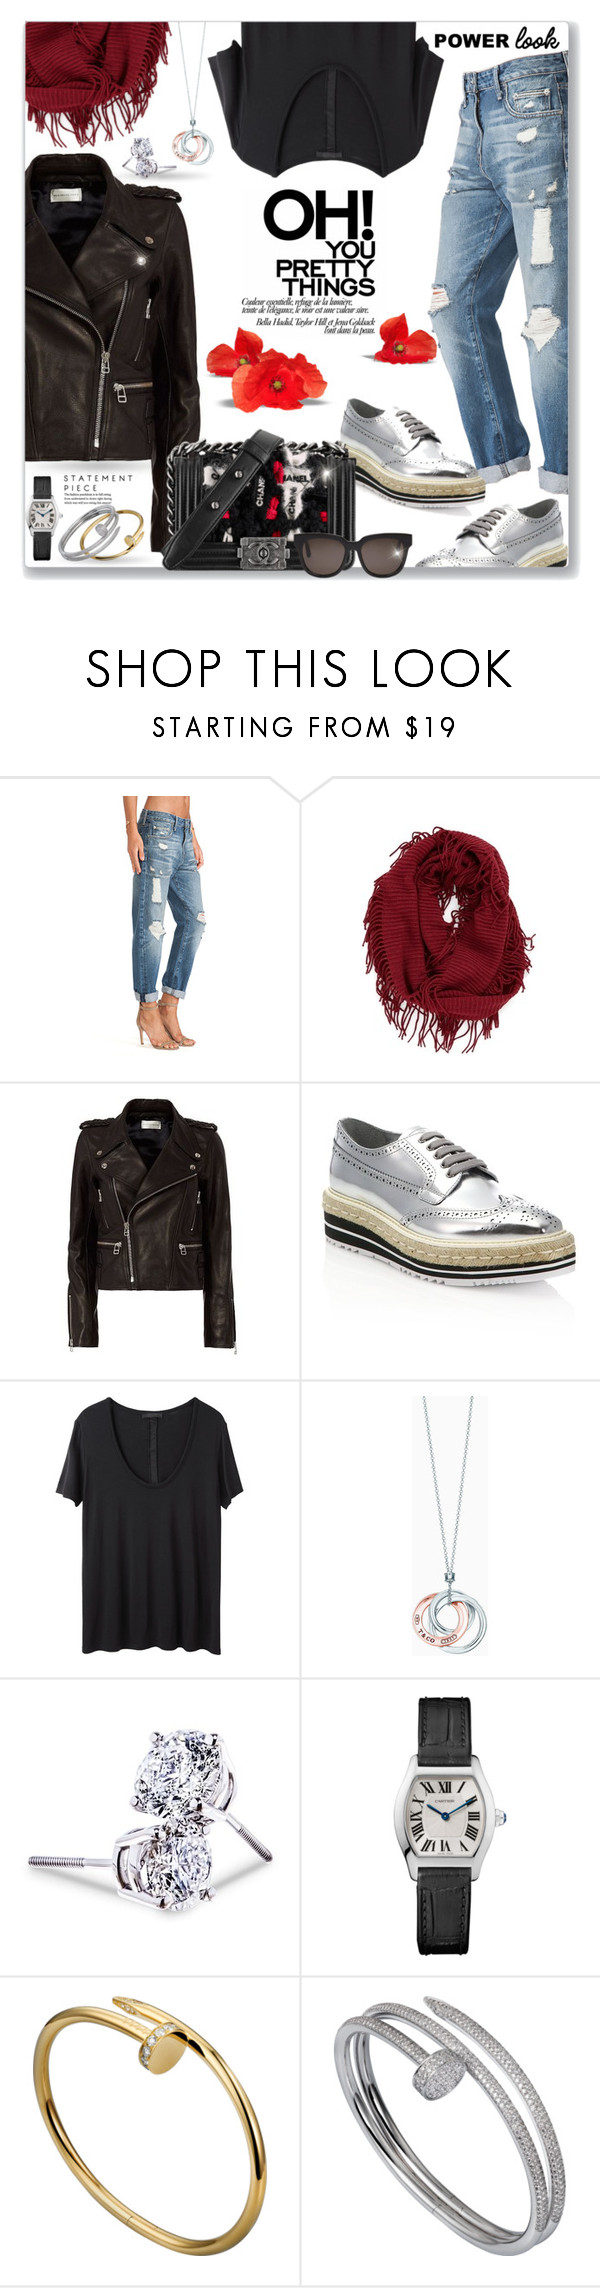 """""""Power Look"""" by sjkfavorites ❤ liked on Polyvore featuring Lovers + Friends, BP., Faith Connexion, Prada, The Row, Tiffany & Co., Lord & Taylor and Gentle Monster"""